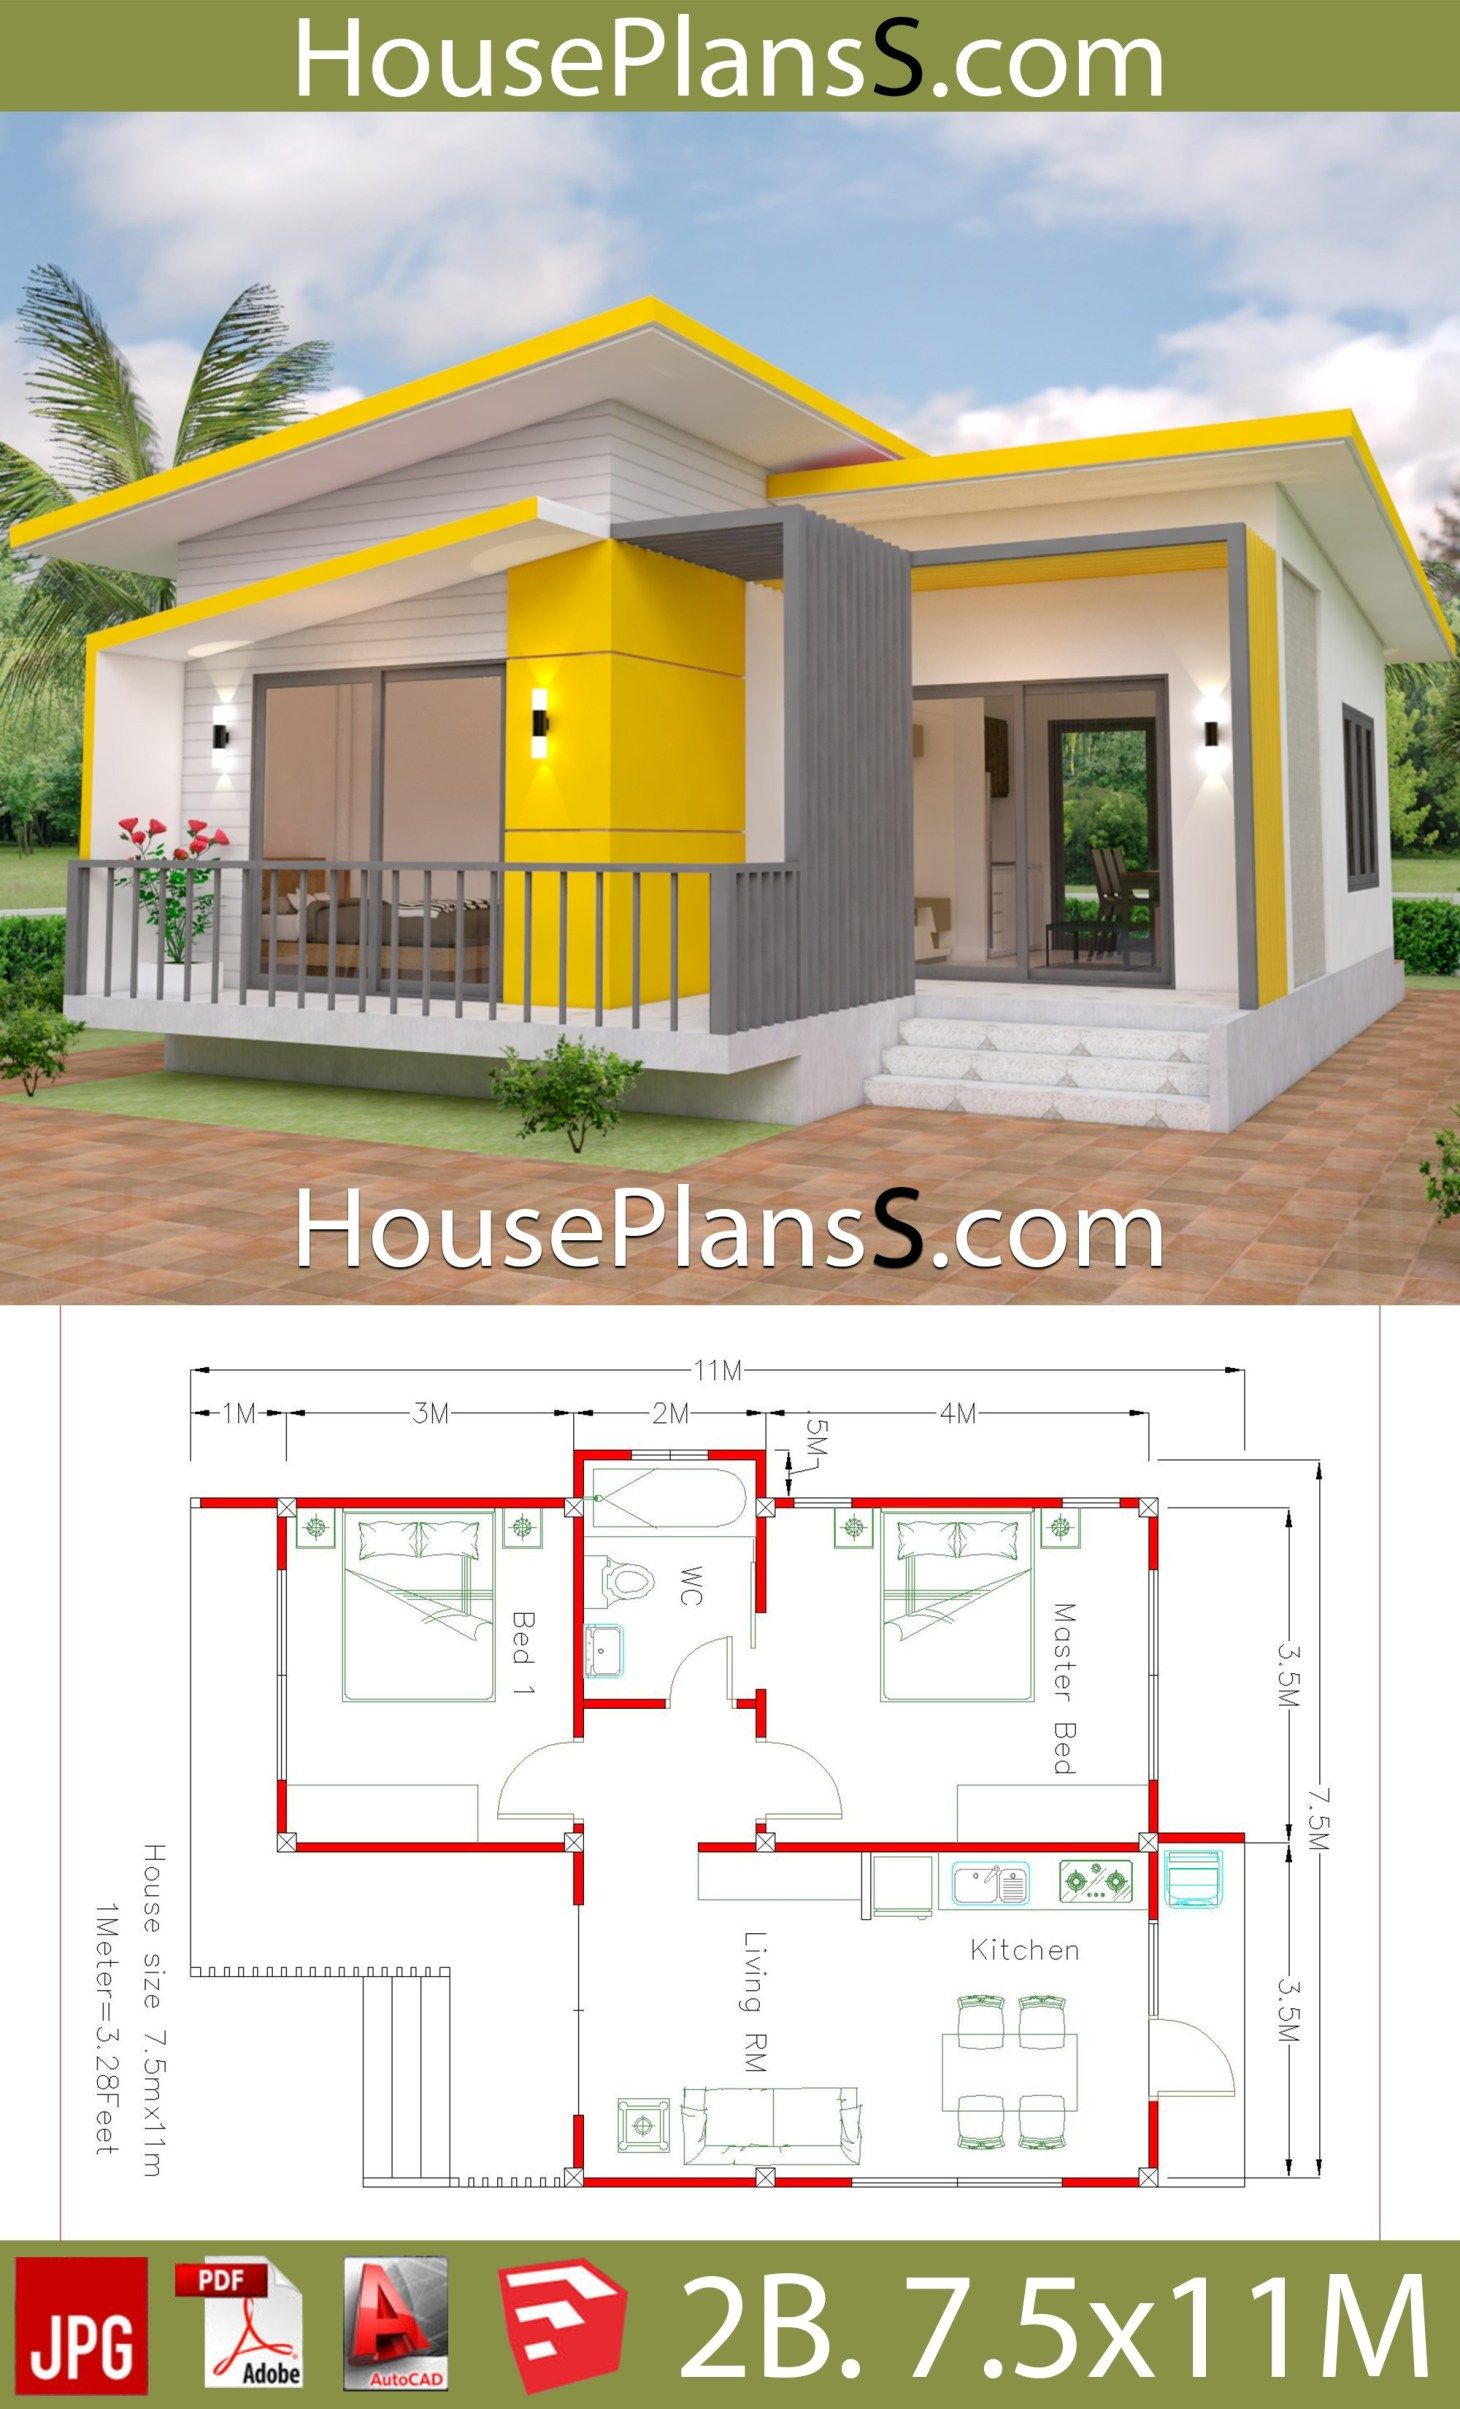 House Plans 7 5x11 With 2 Bedrooms Full Plans House Plans Sam Sims House Plans Small House Design Plans Small House Design